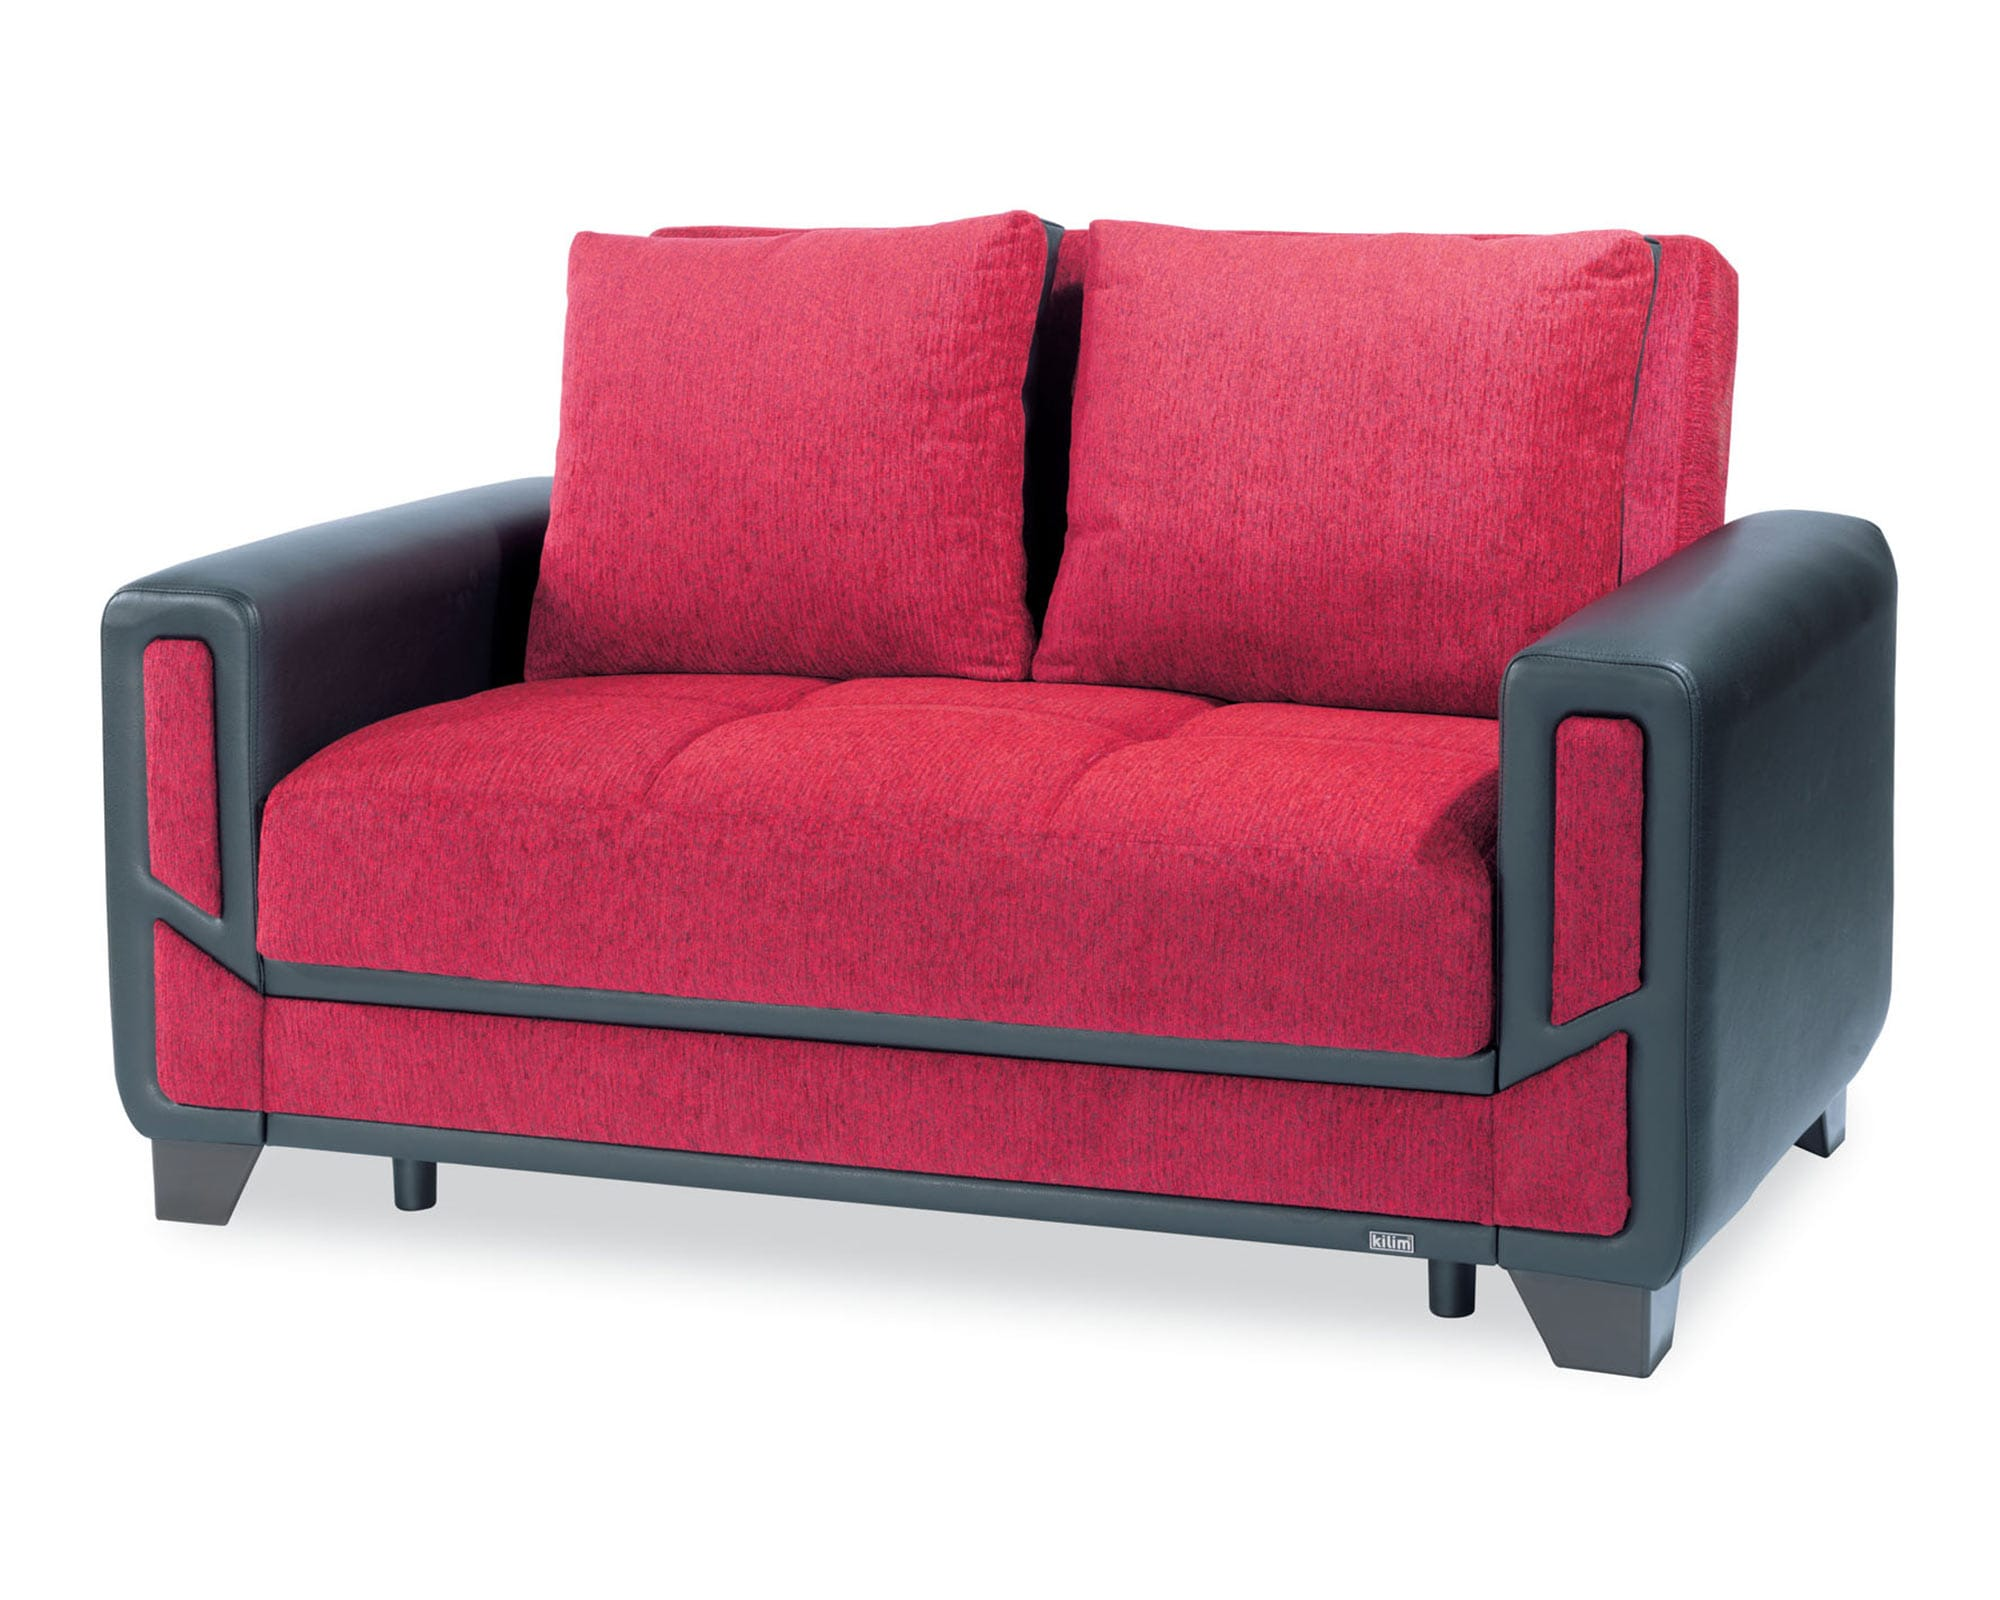 Mondo Modern Red Convertible Loveseat by Casamode